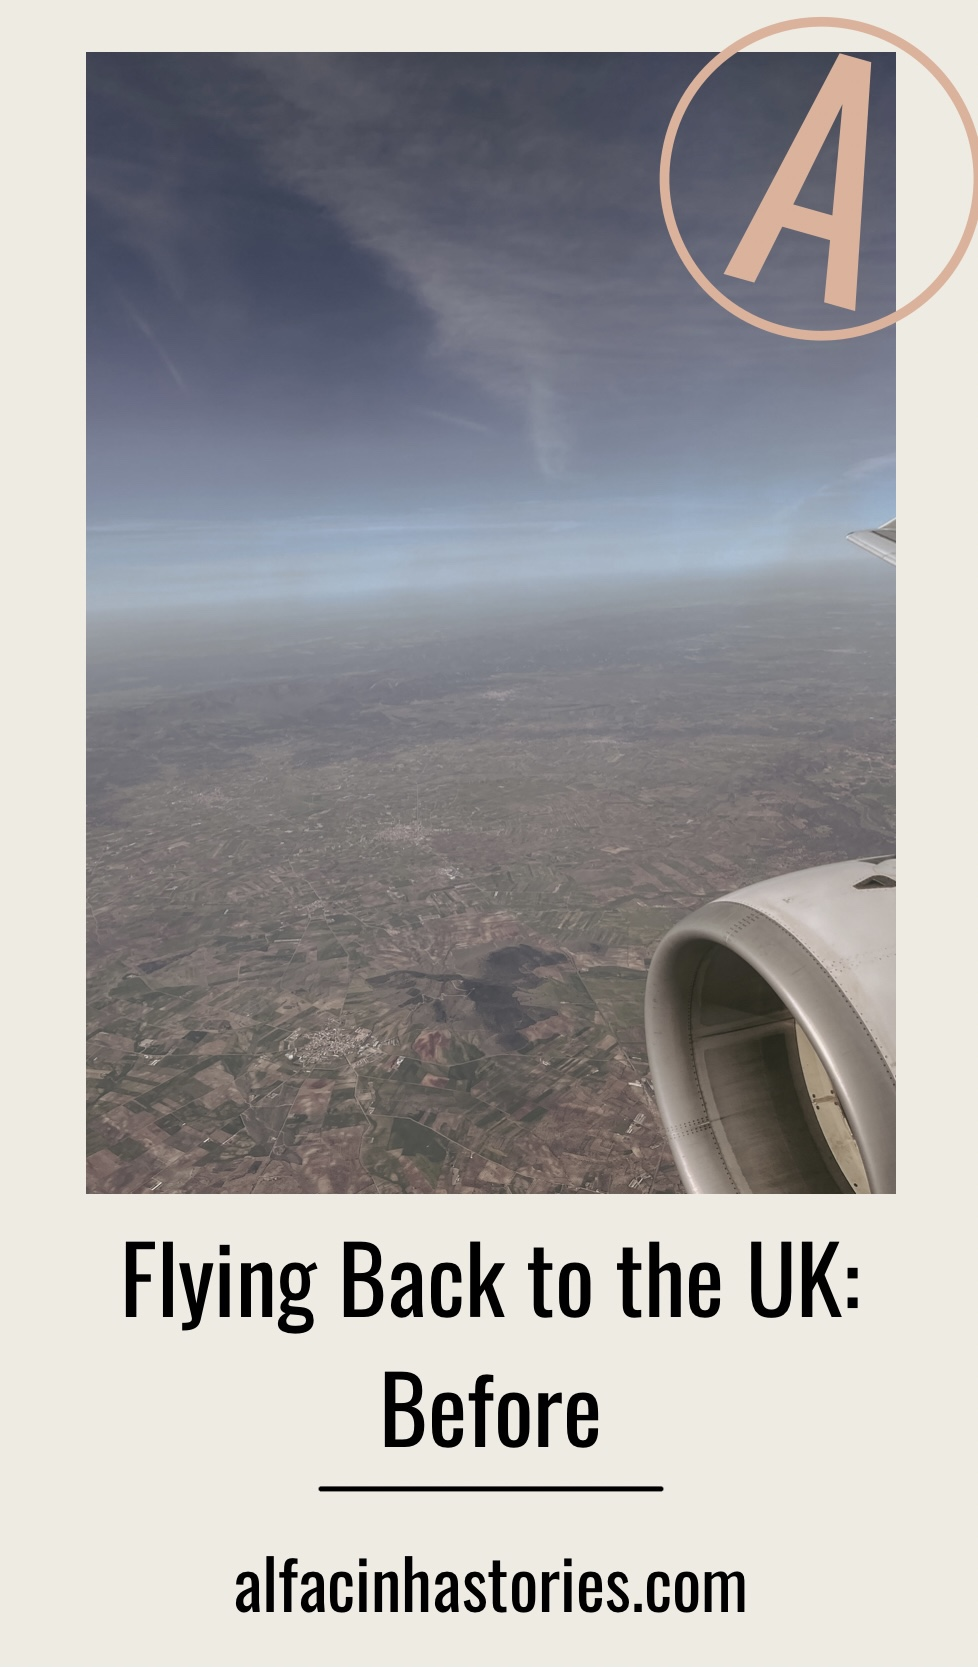 Flying Back to the UK: Before